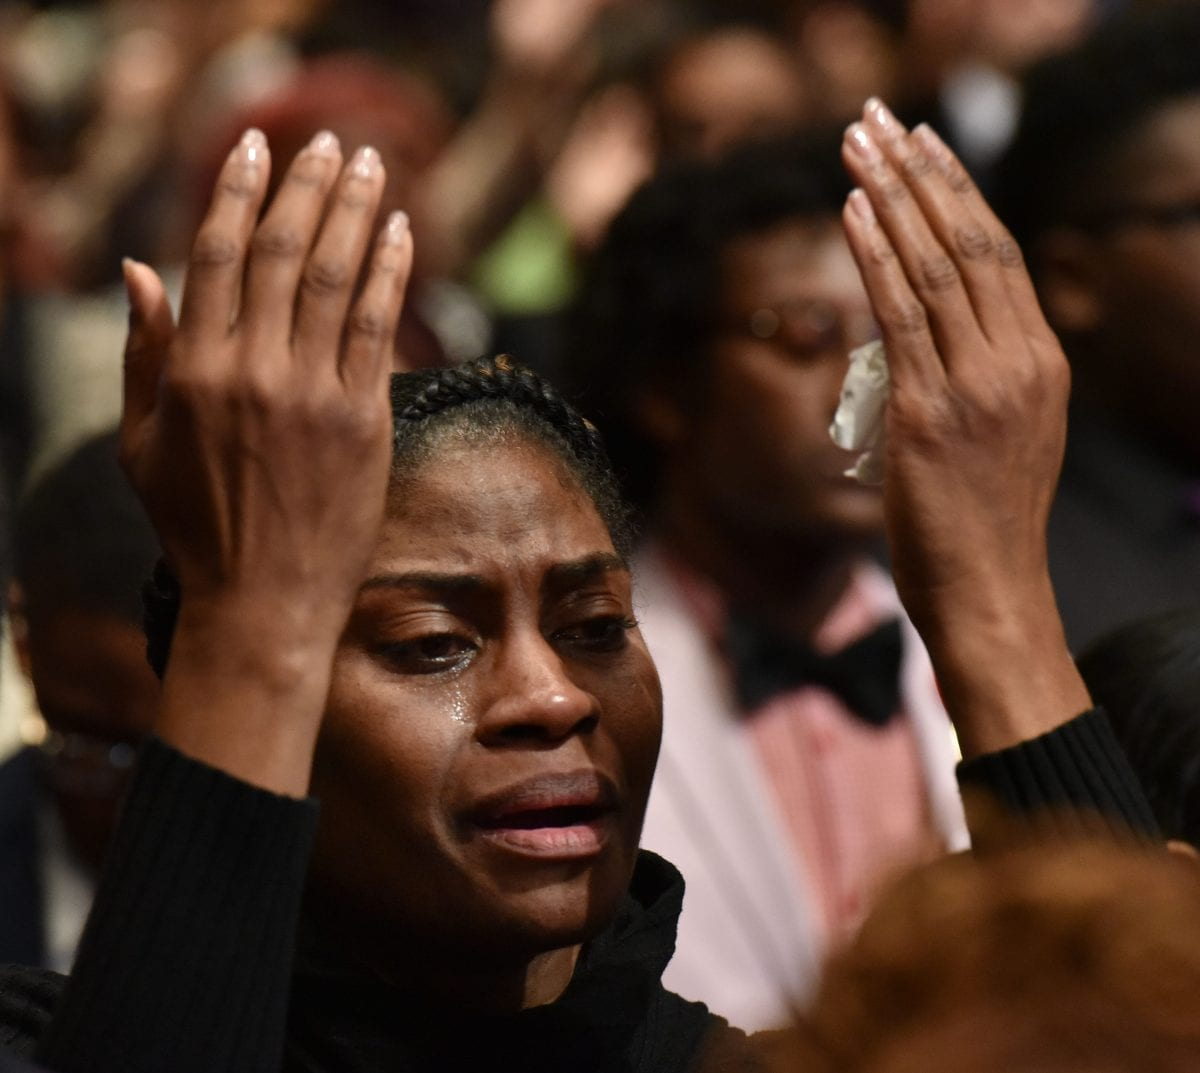 JANUARY 25, 2017 LITHONIA Mourners fill the sanctuary during the Homegoing services for Bishop Eddie Long, senior pastor, at New Birth Missionary Baptist Church, Wednesday, January 25, 2017. Bishop Long died January 15th, after a long-time fight with cancer. He was 63 years old. Hyosub Shin/AJC